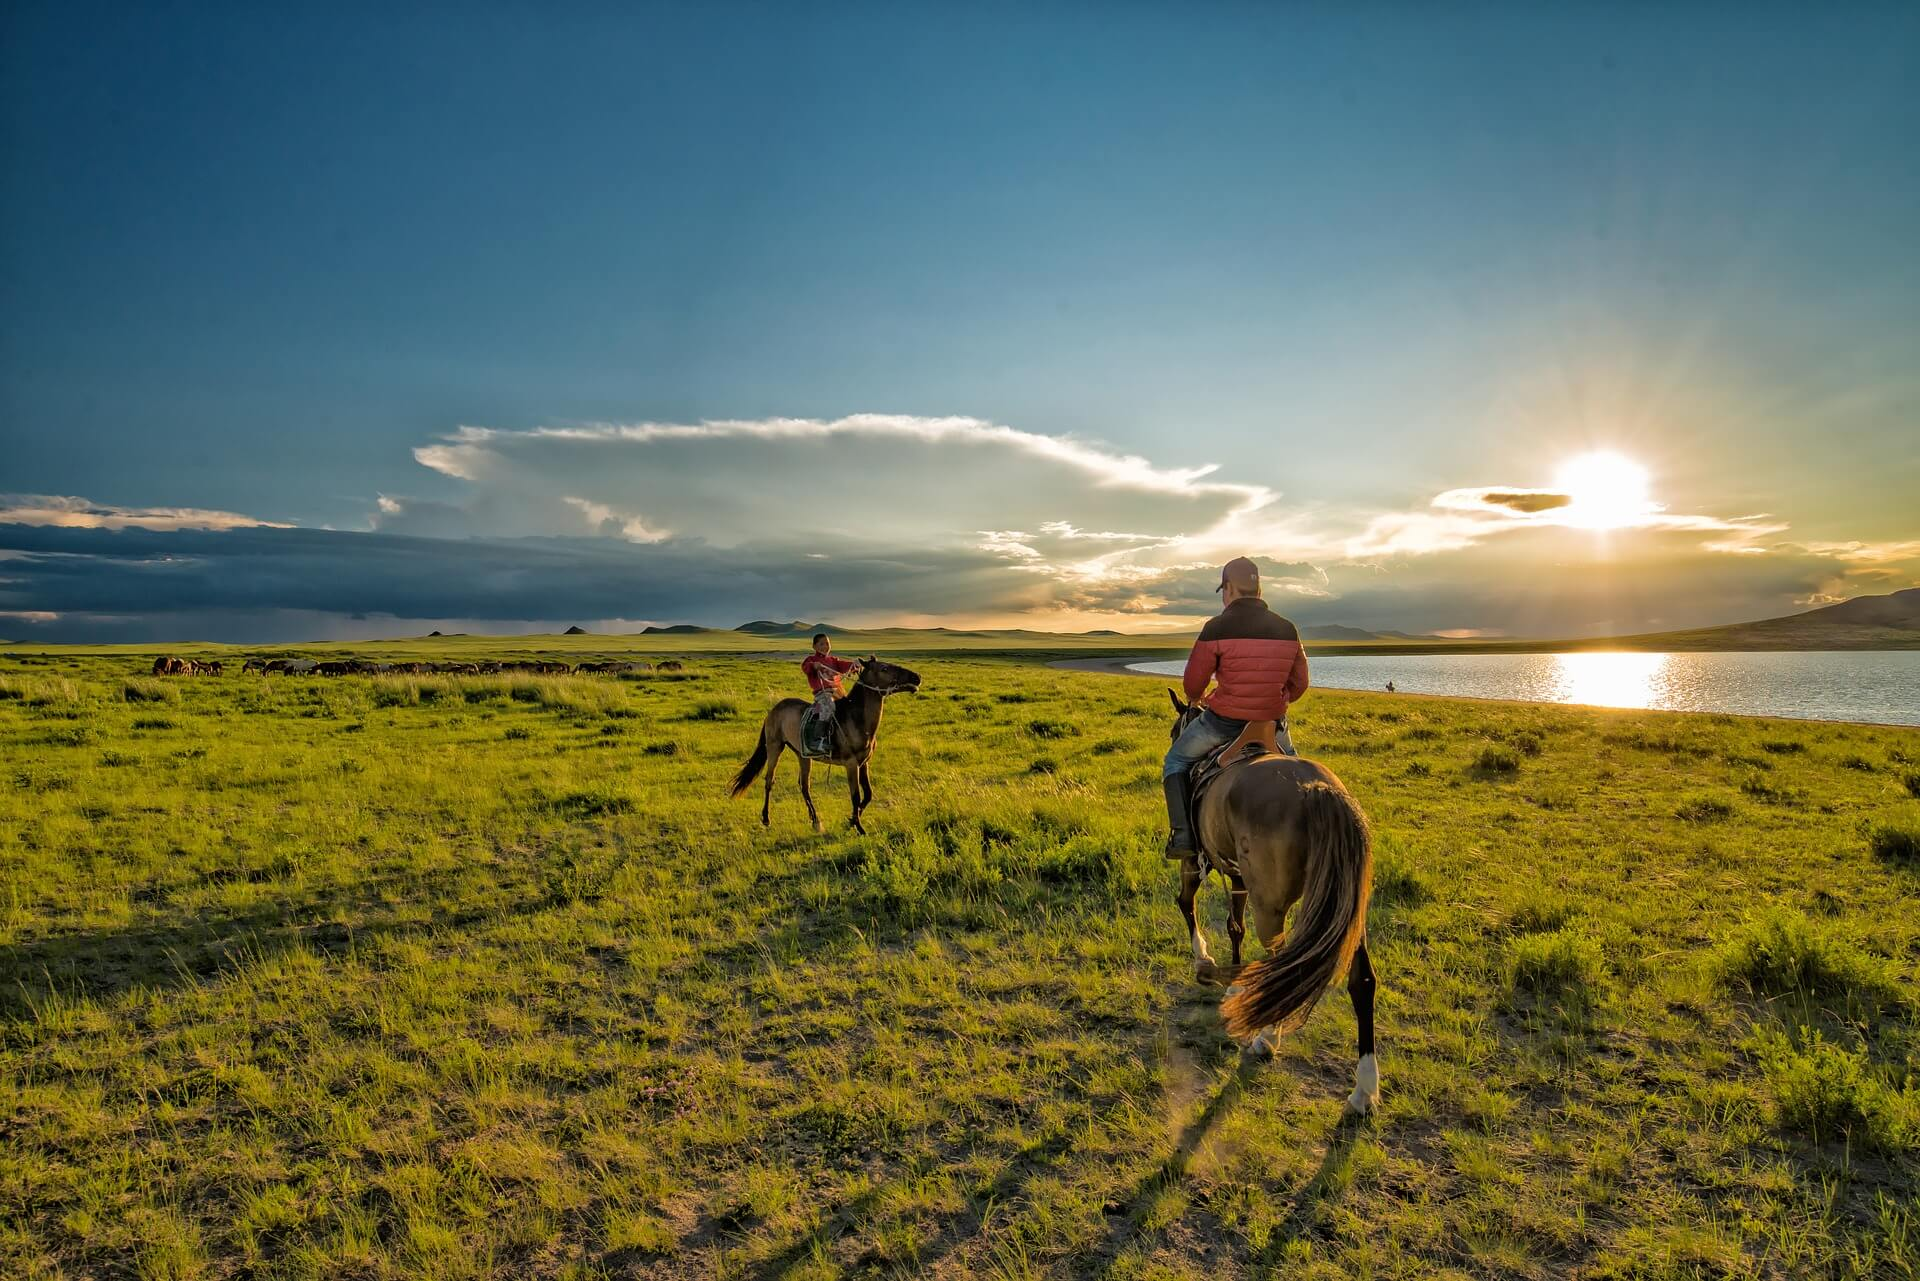 two people riding horses in mongolia